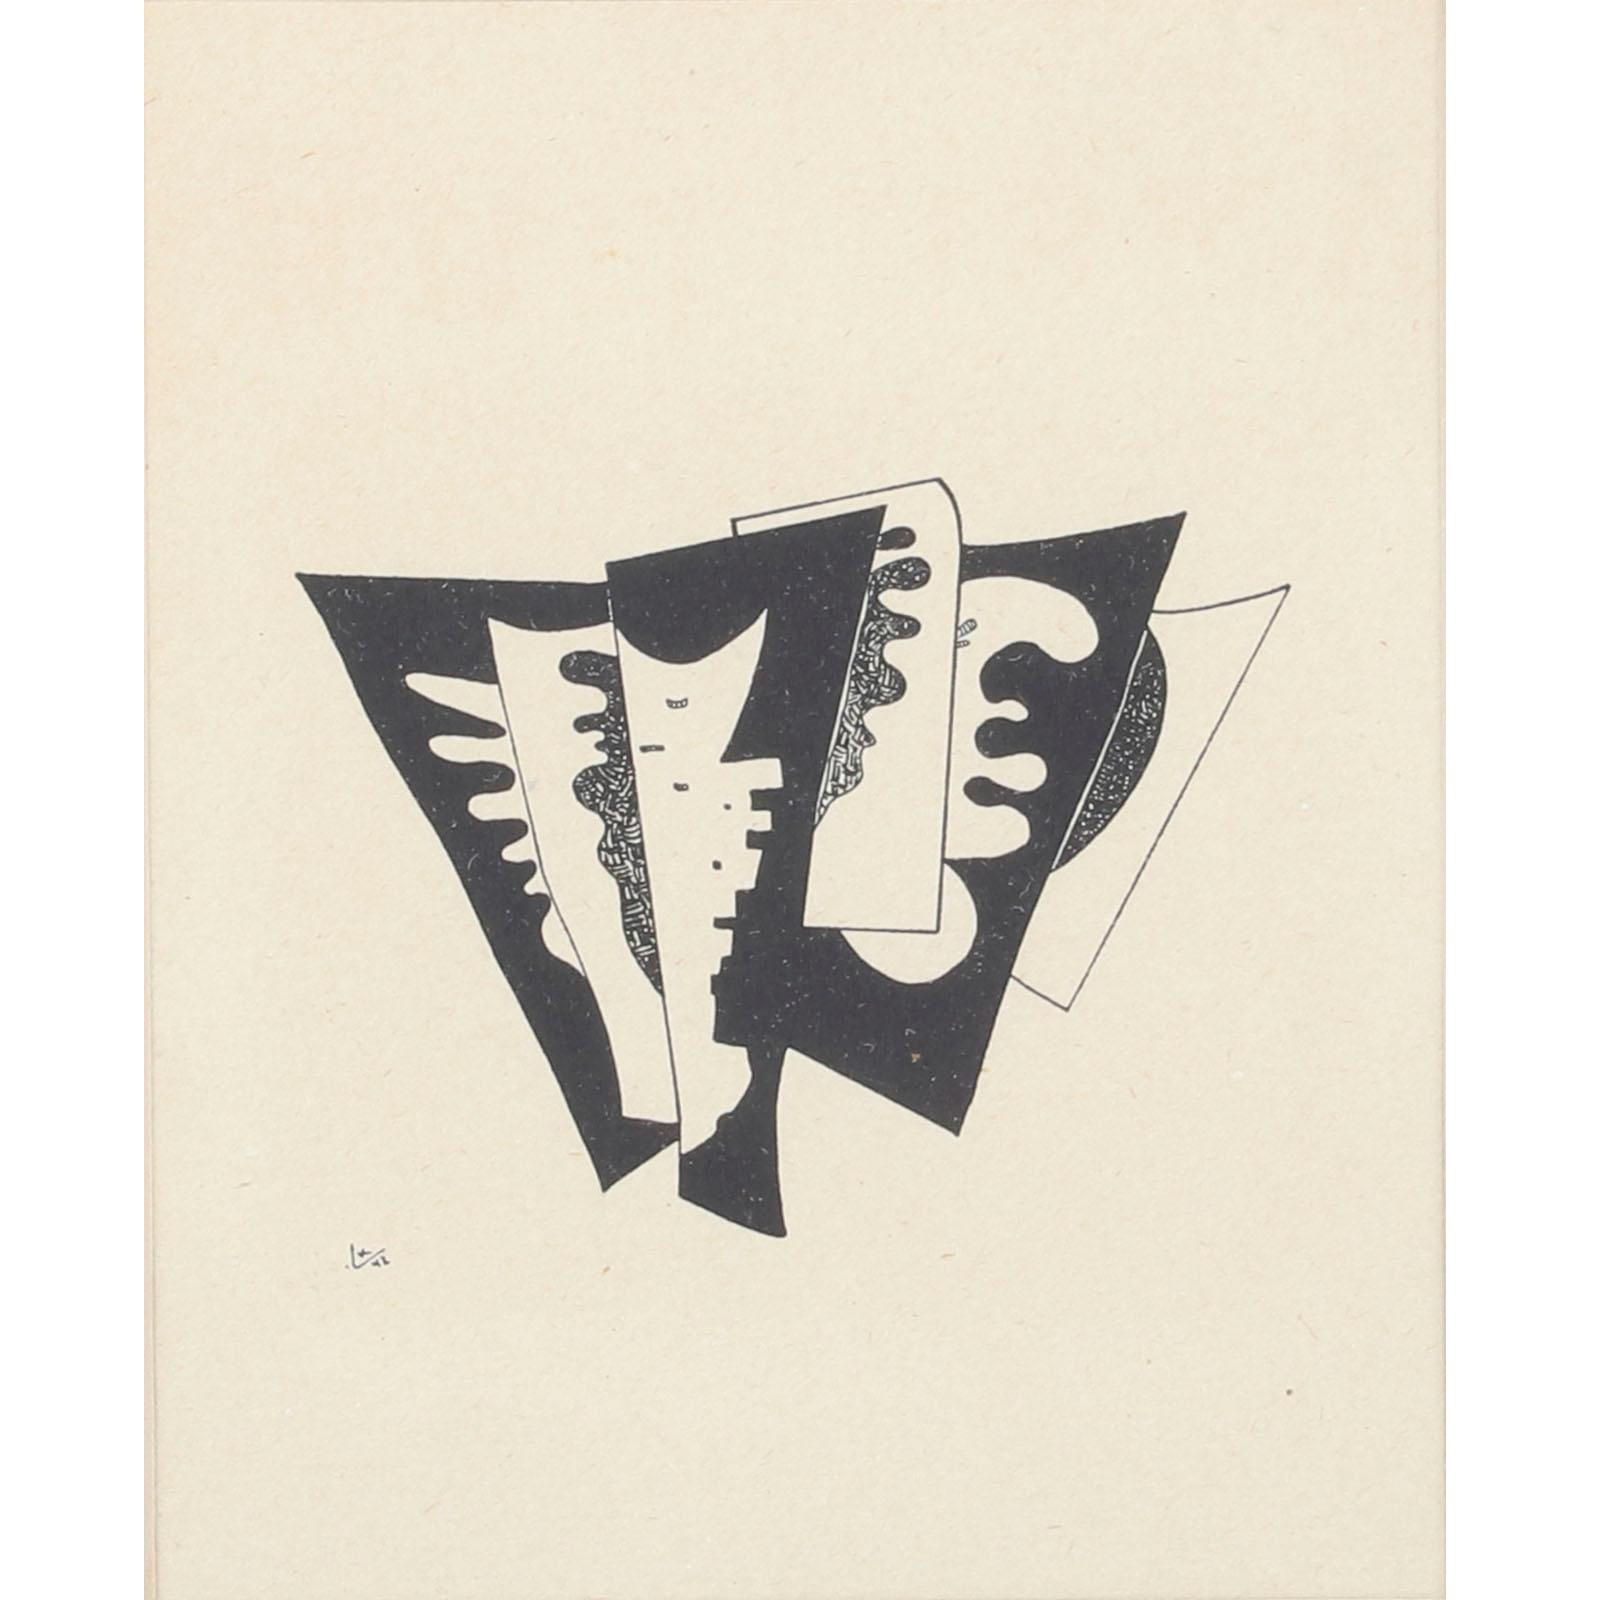 "Wassily Kandinsky, (Russian Federation / France, 1866-1944), Untitled, 1942, woodcut, 12""H x 9 3/4""W (image) 14"" x 12"" (frame)"